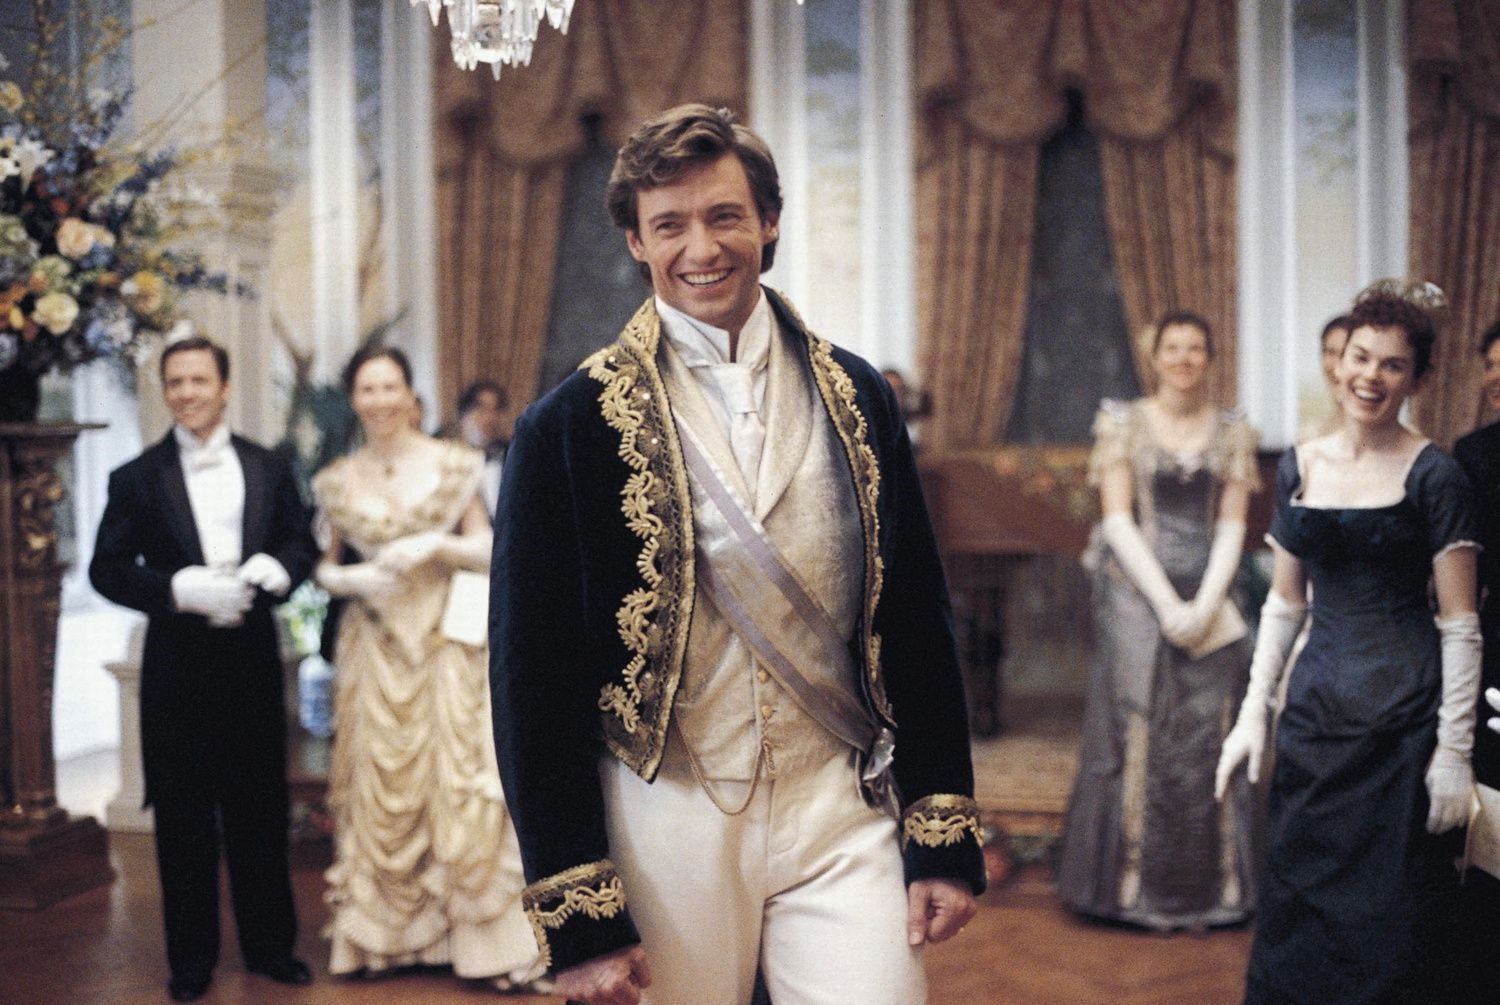 Hugh Jackman as Leopold Mountbatten, Duke of Albany in Kate & Leopold (2001)